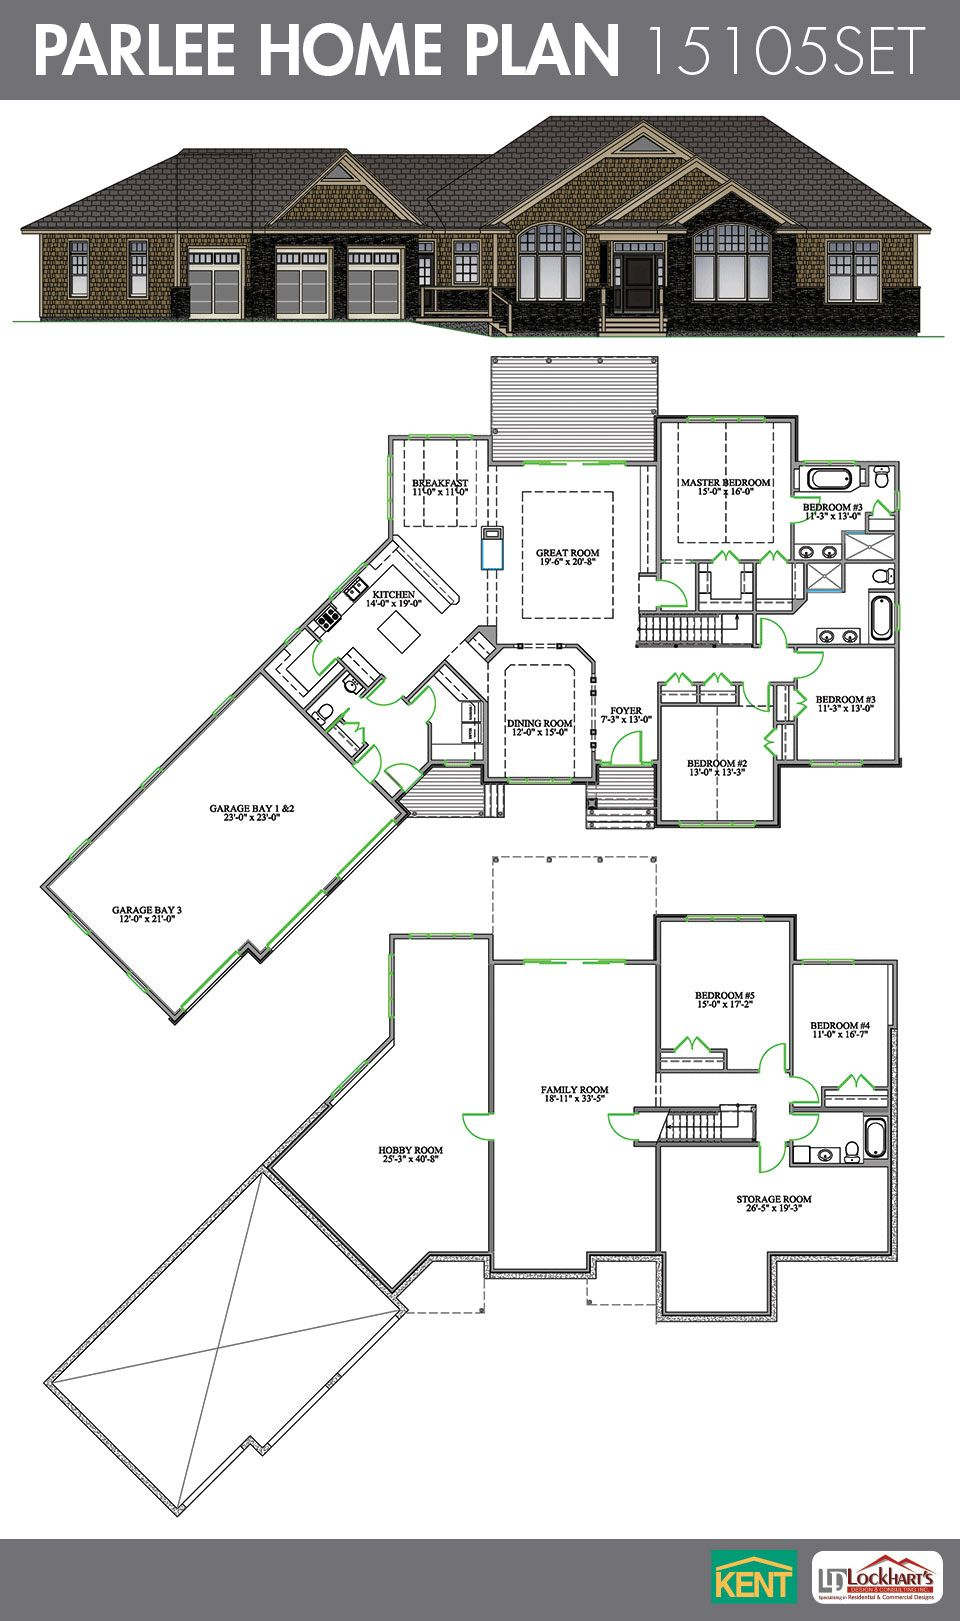 Parlee Home Plan House Plans Simple Ranch House Plans Ranch House Plans